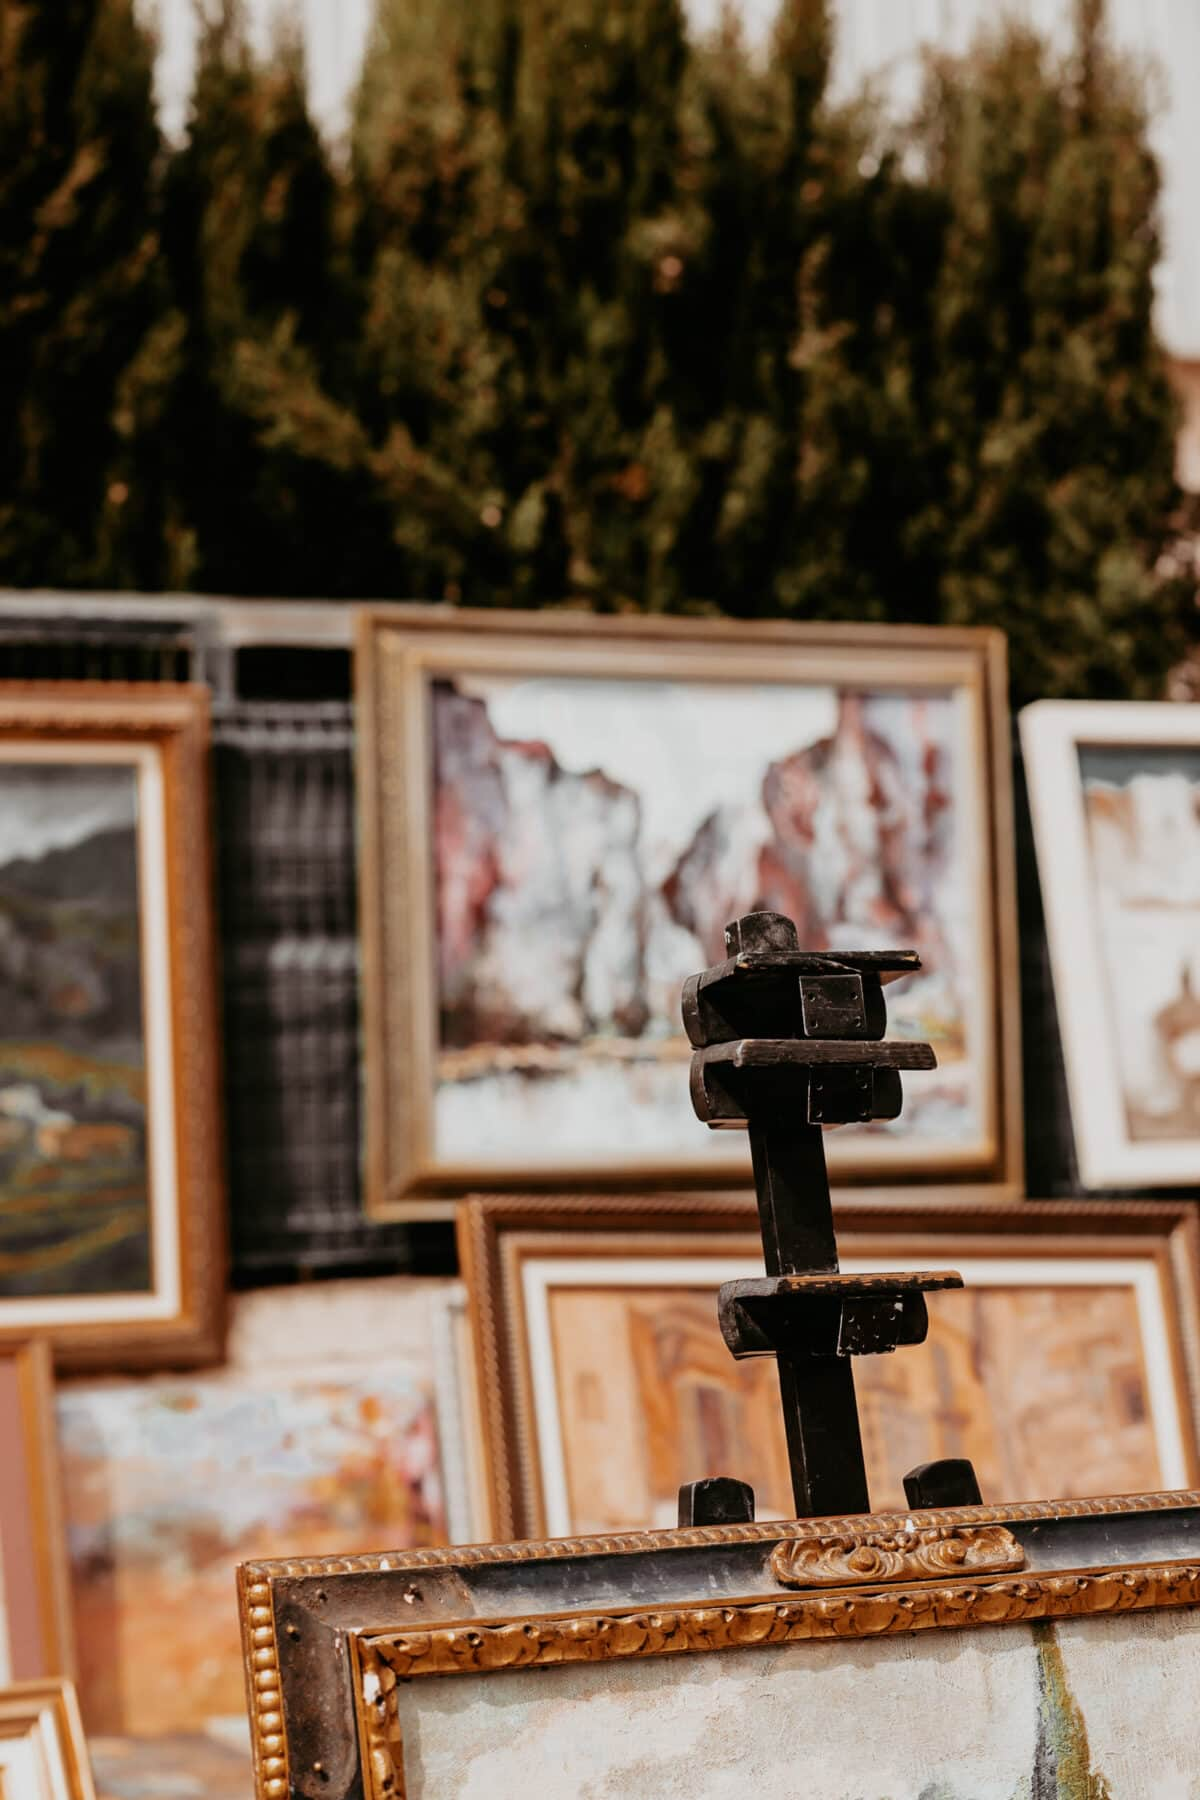 Buying paintings at the flea market in Consell Mallorca